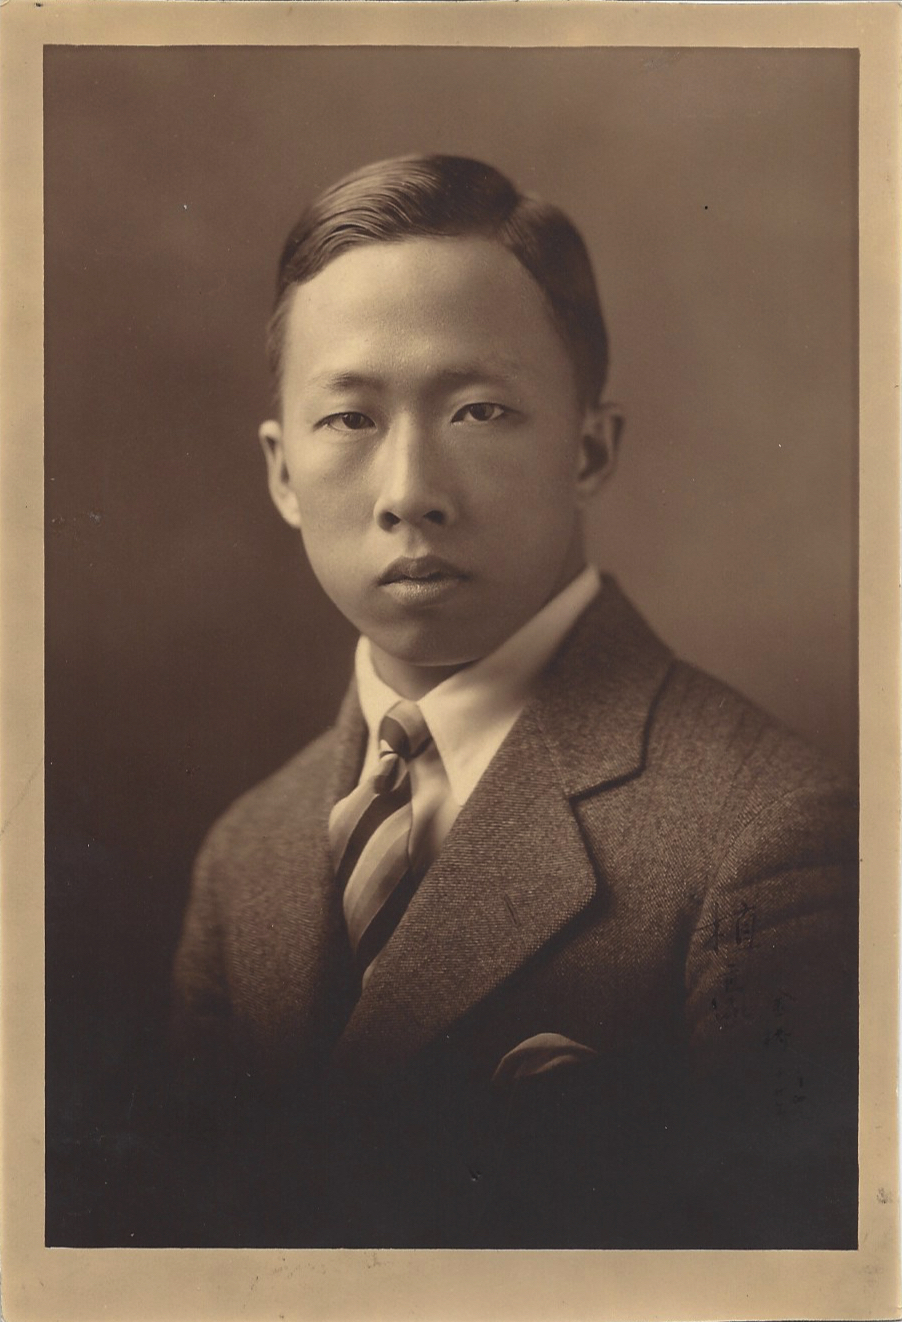 Chik-Ho Lam in his youth, nd. Courtesy Shona Lam.